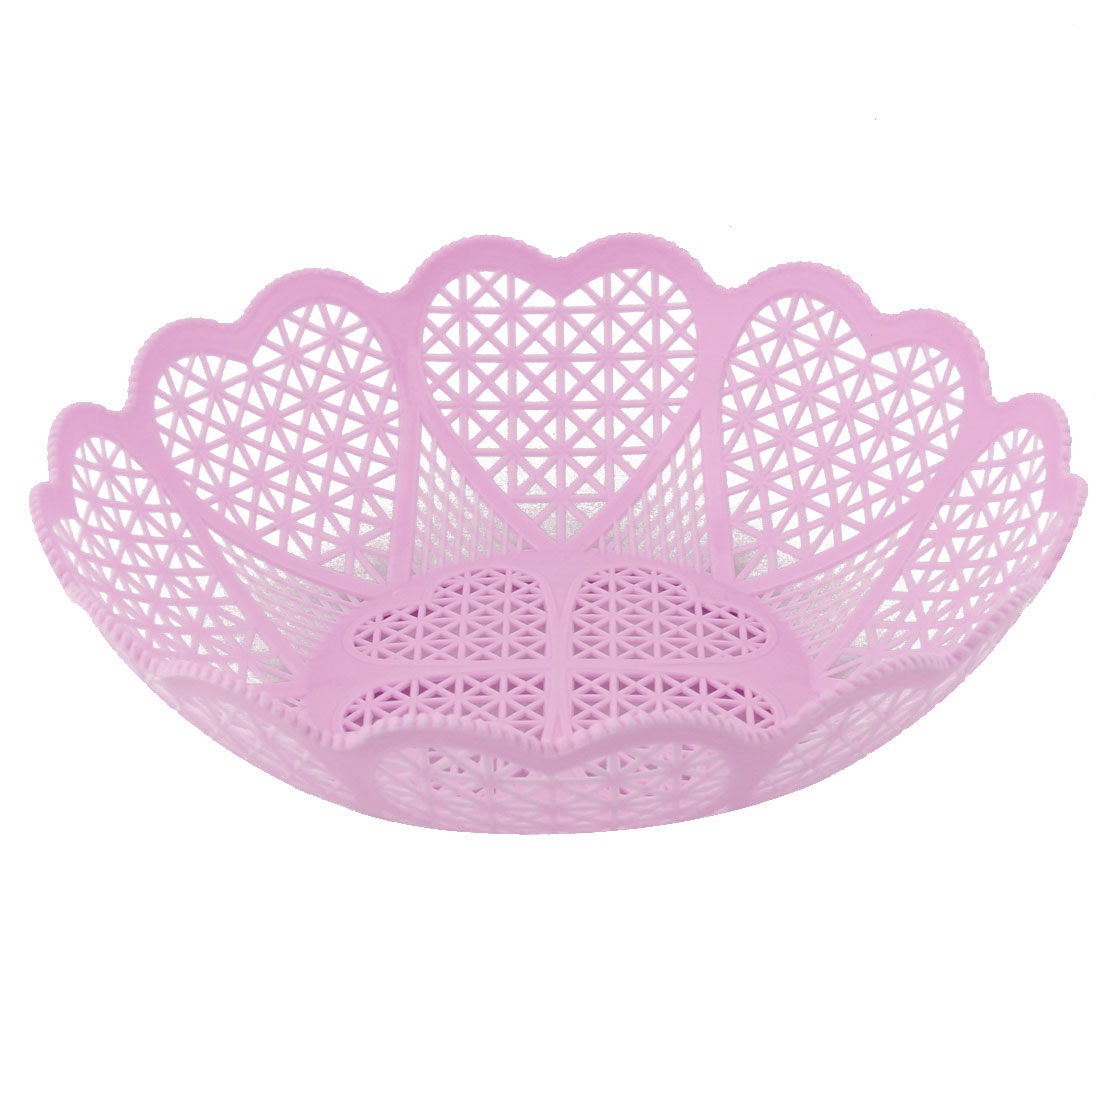 Home Kitchen Plastic Hollow Out Wavy Edge Design Fruit Storage Basket Tray Pink